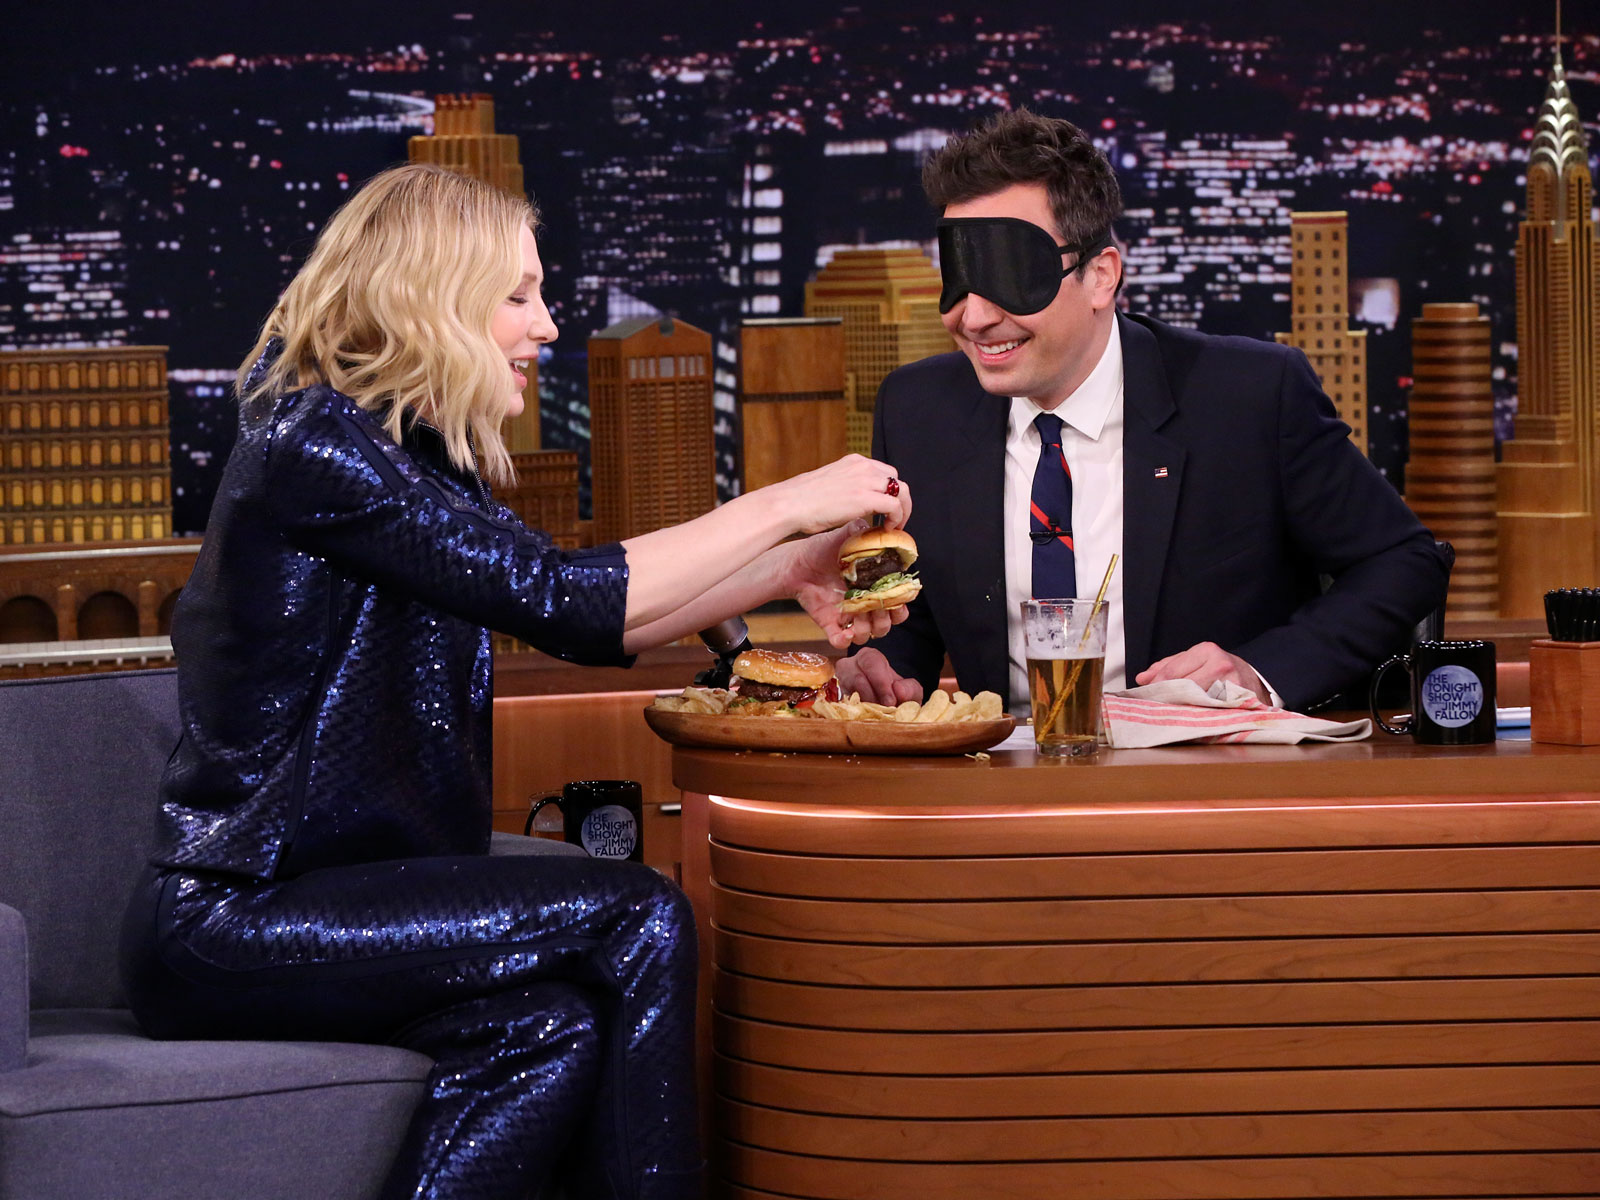 Why Cate Blanchett Prefers Australian Burgers to American Ones